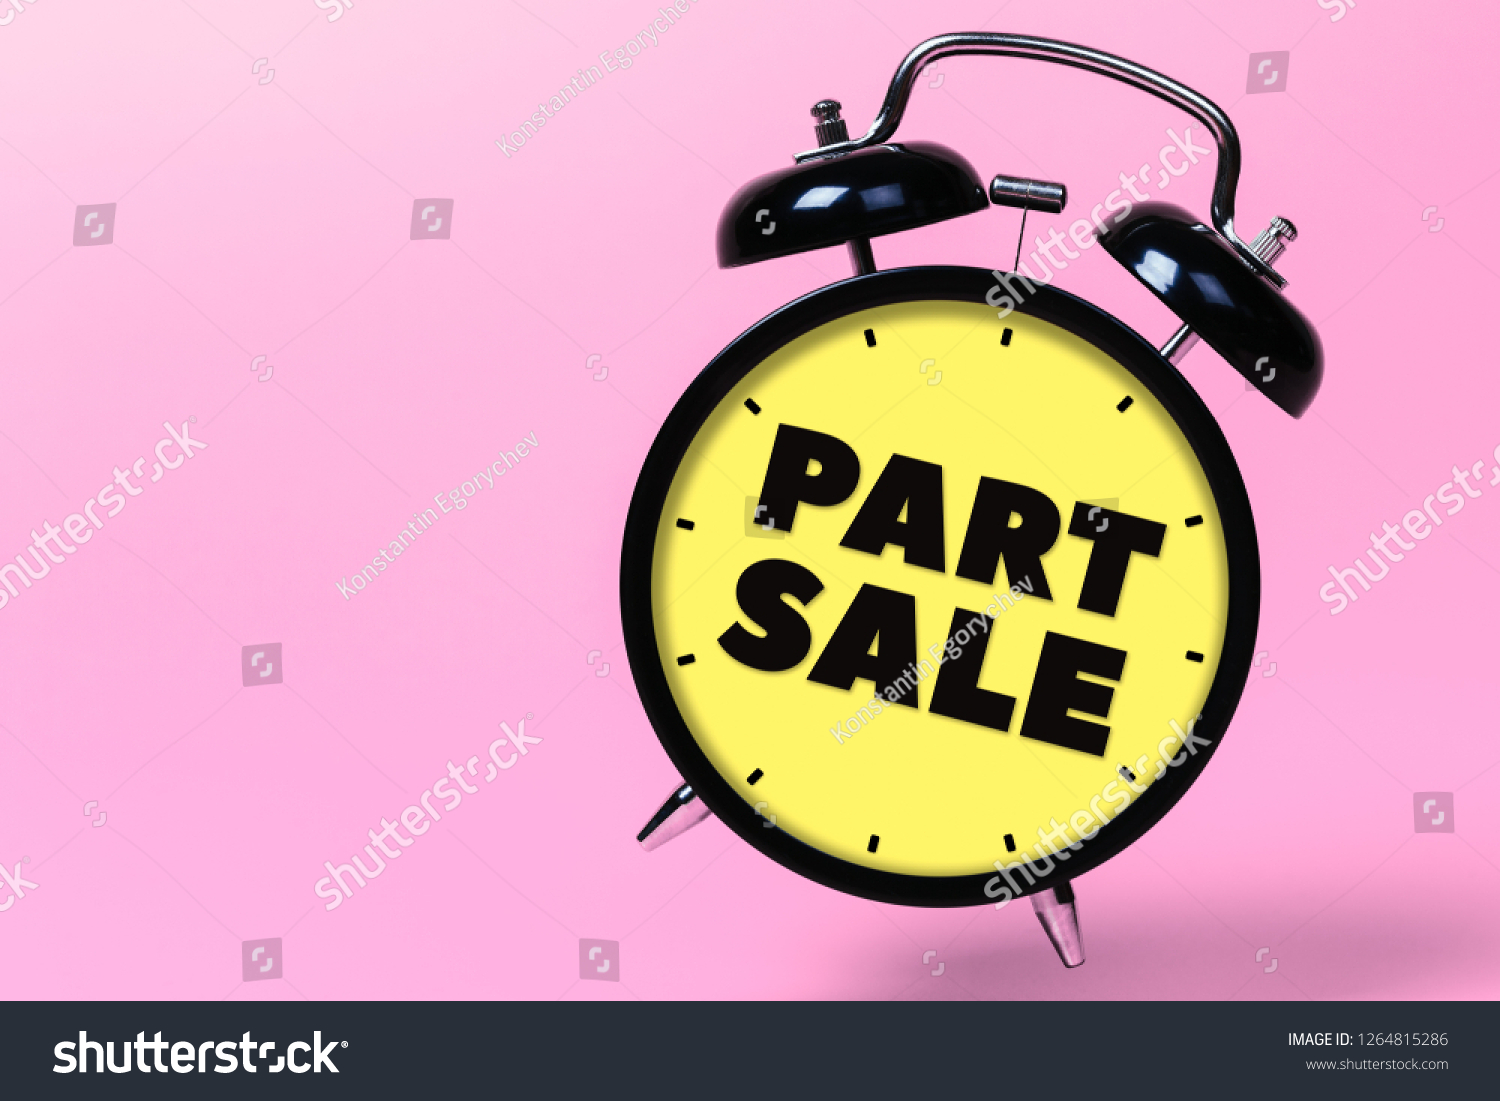 Part Sale Black Alarm Clock Yellow Stock Photo (Edit Now) 1264815286